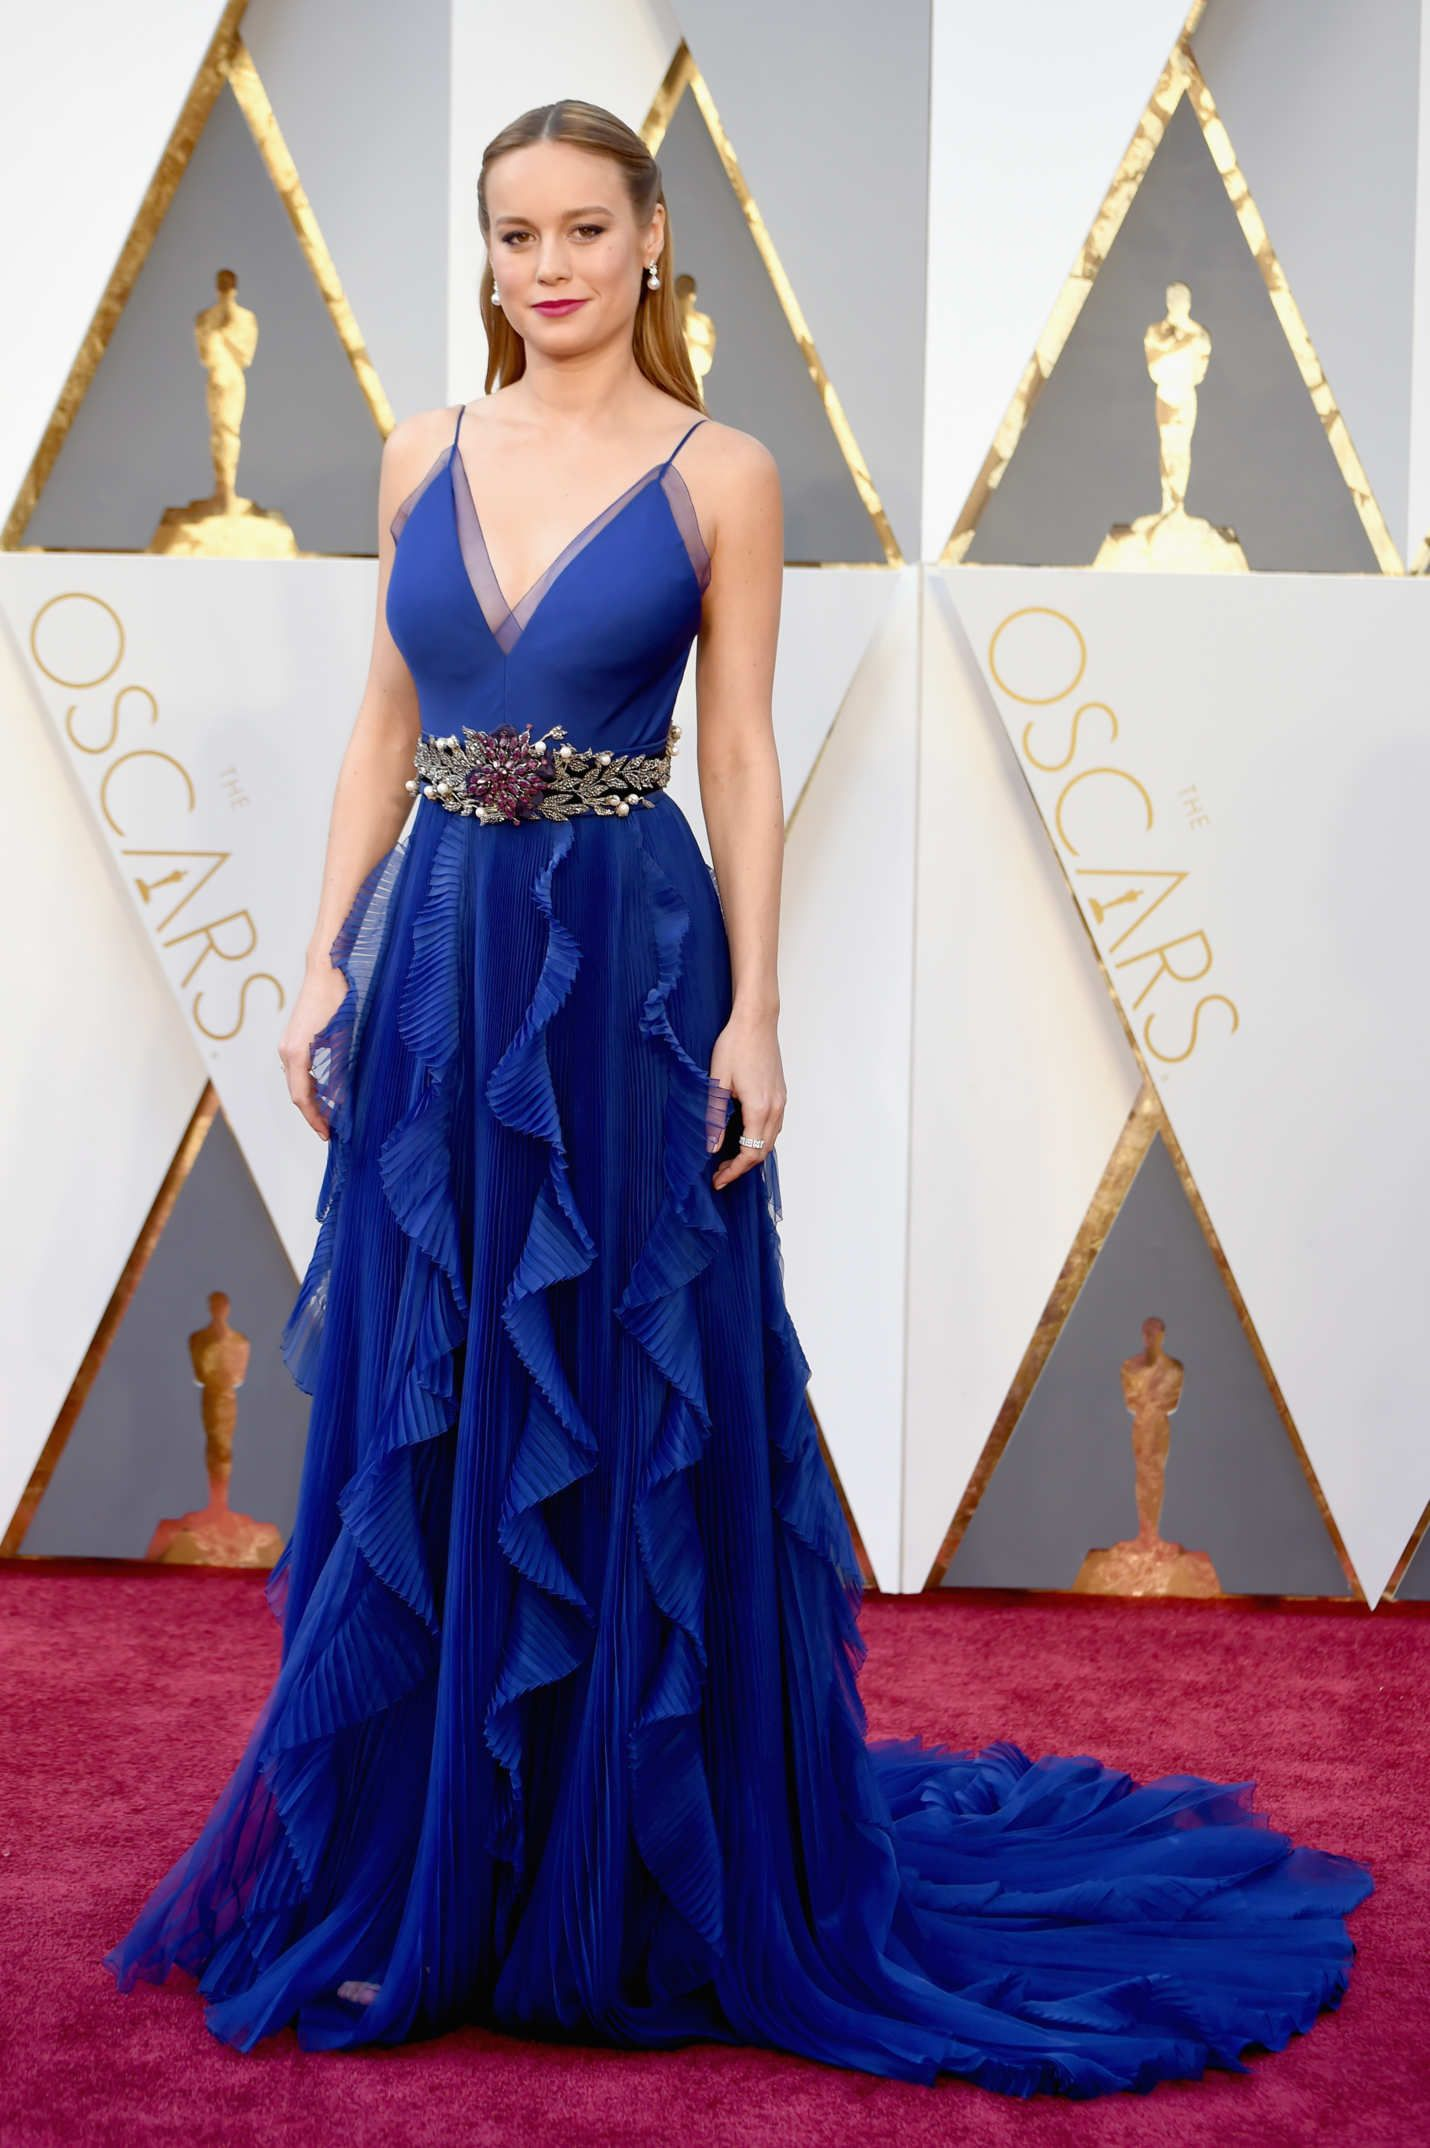 2016 Academy Awards ~ Brie Larson Dress by Gucci. | My Style ...